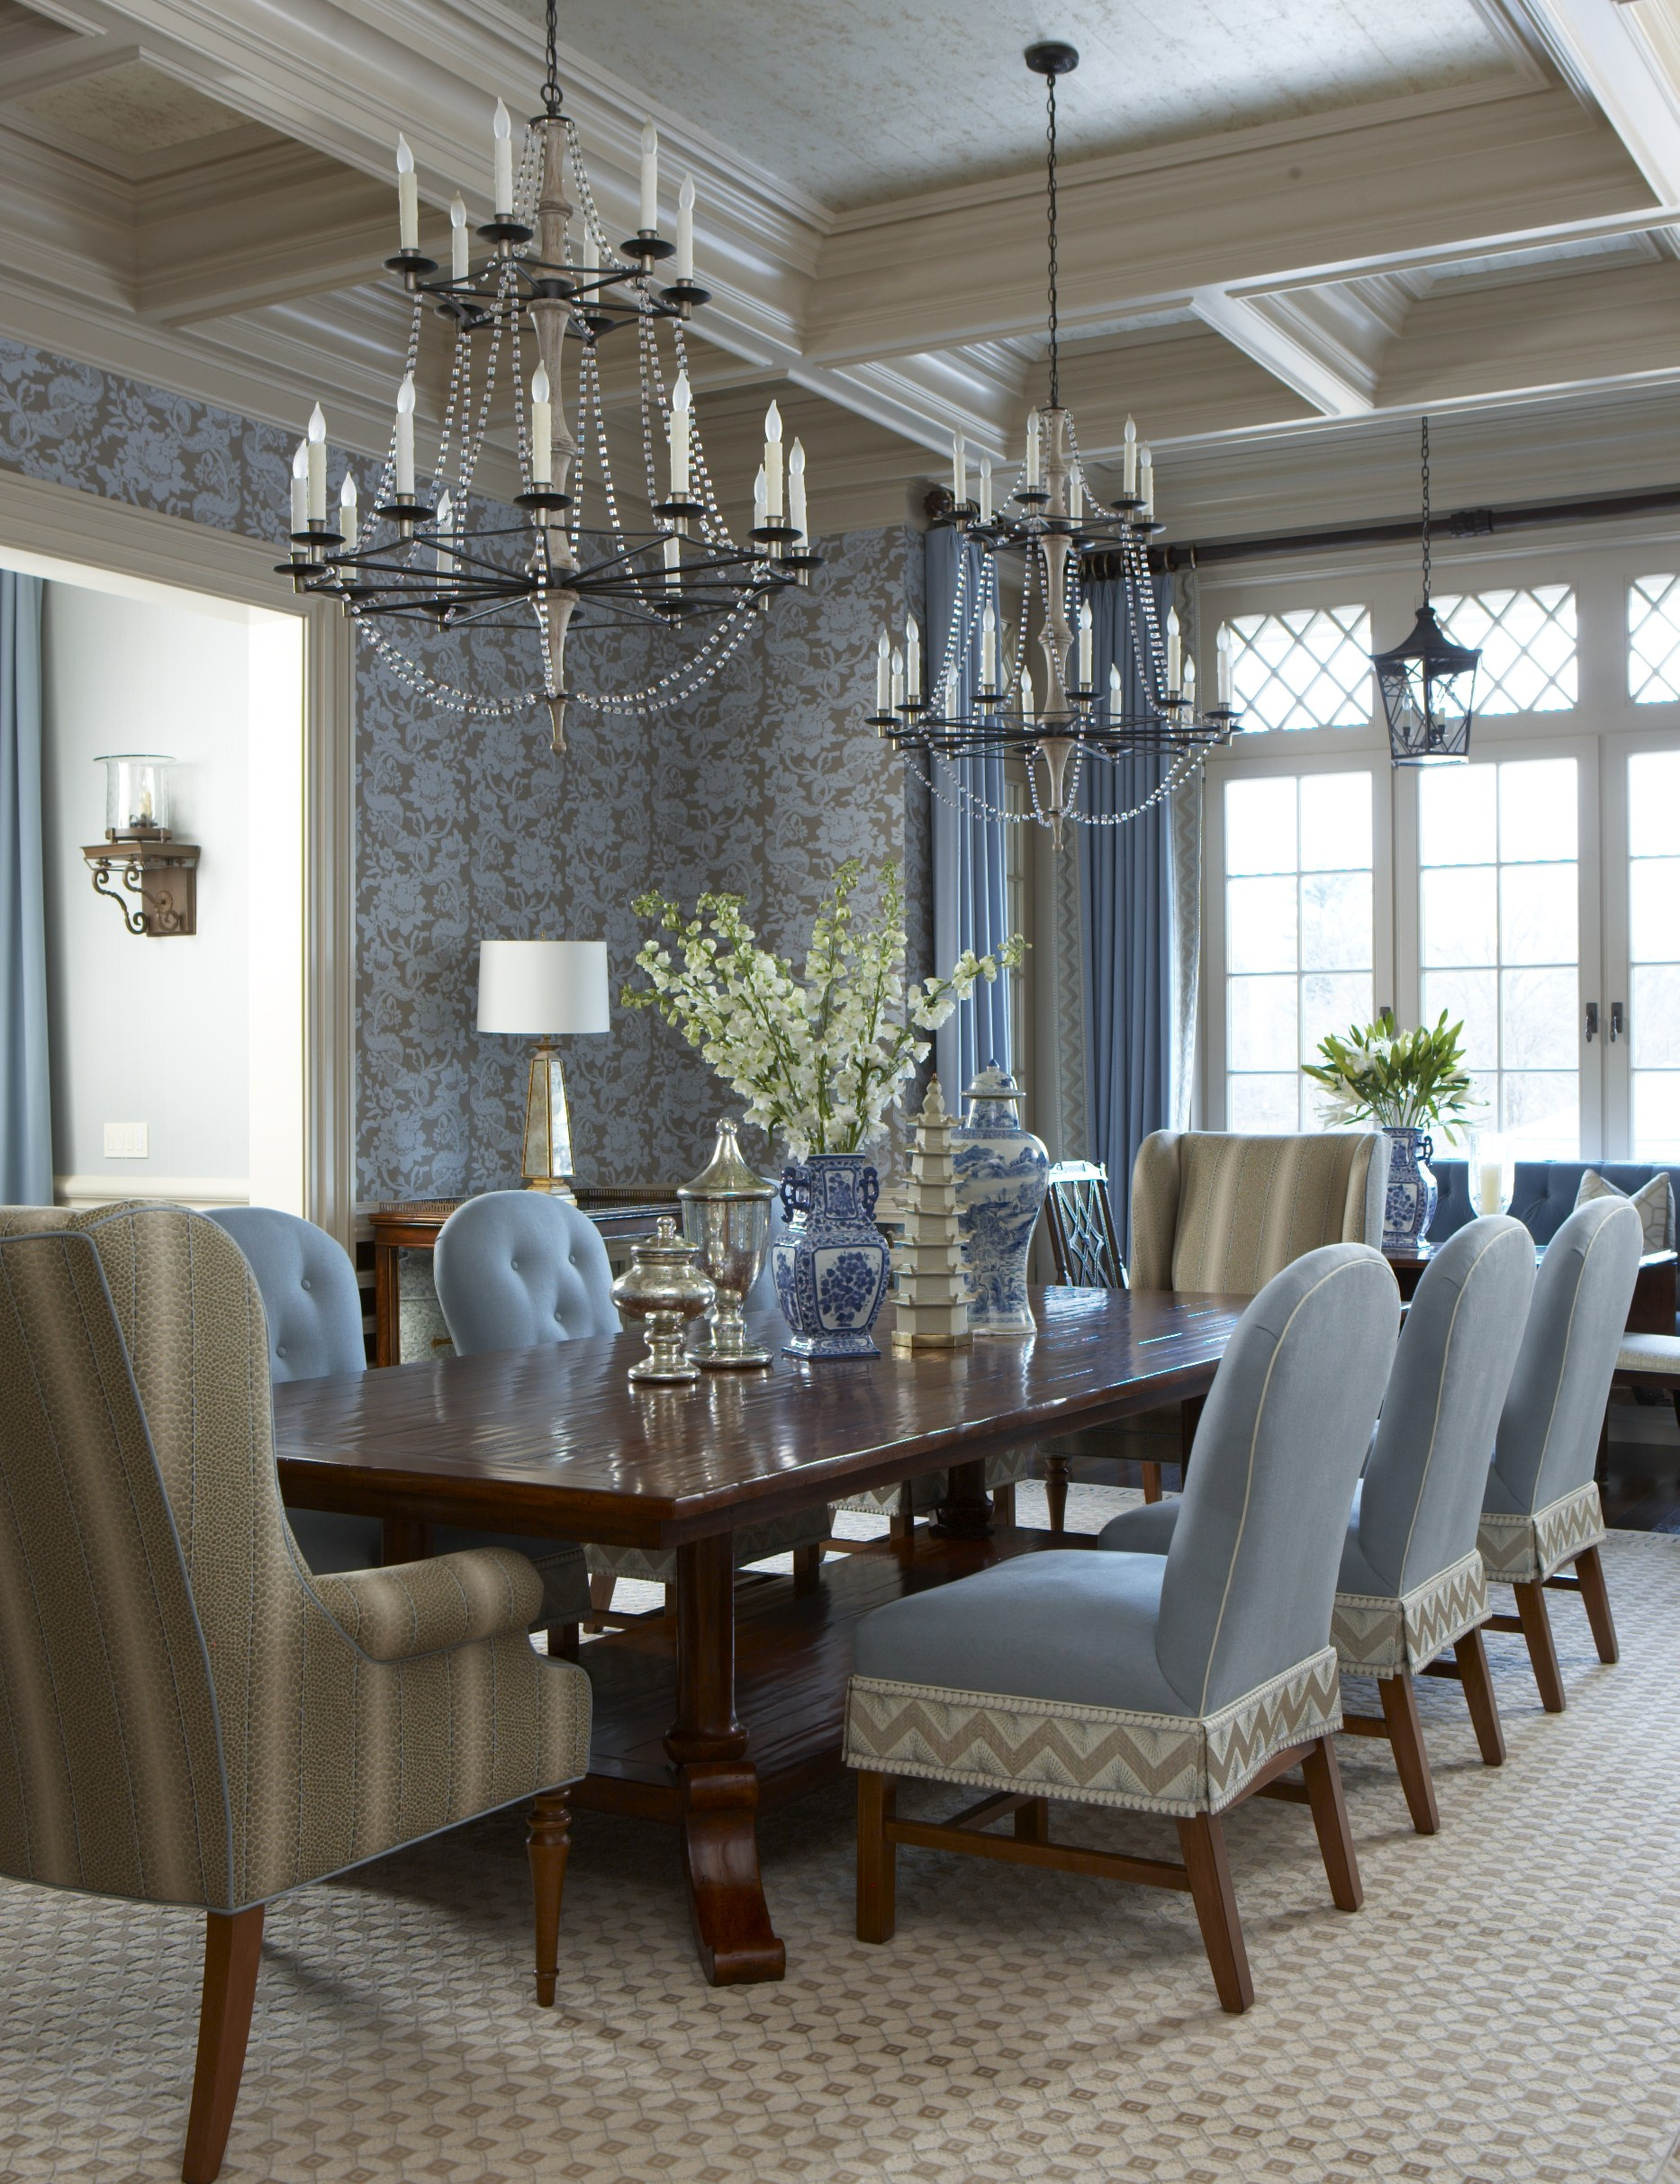 Two chandeliers help to fill the grand size of the dining room and are more relaxed than one very dominant light fixture. Photo by Michael Partenio.